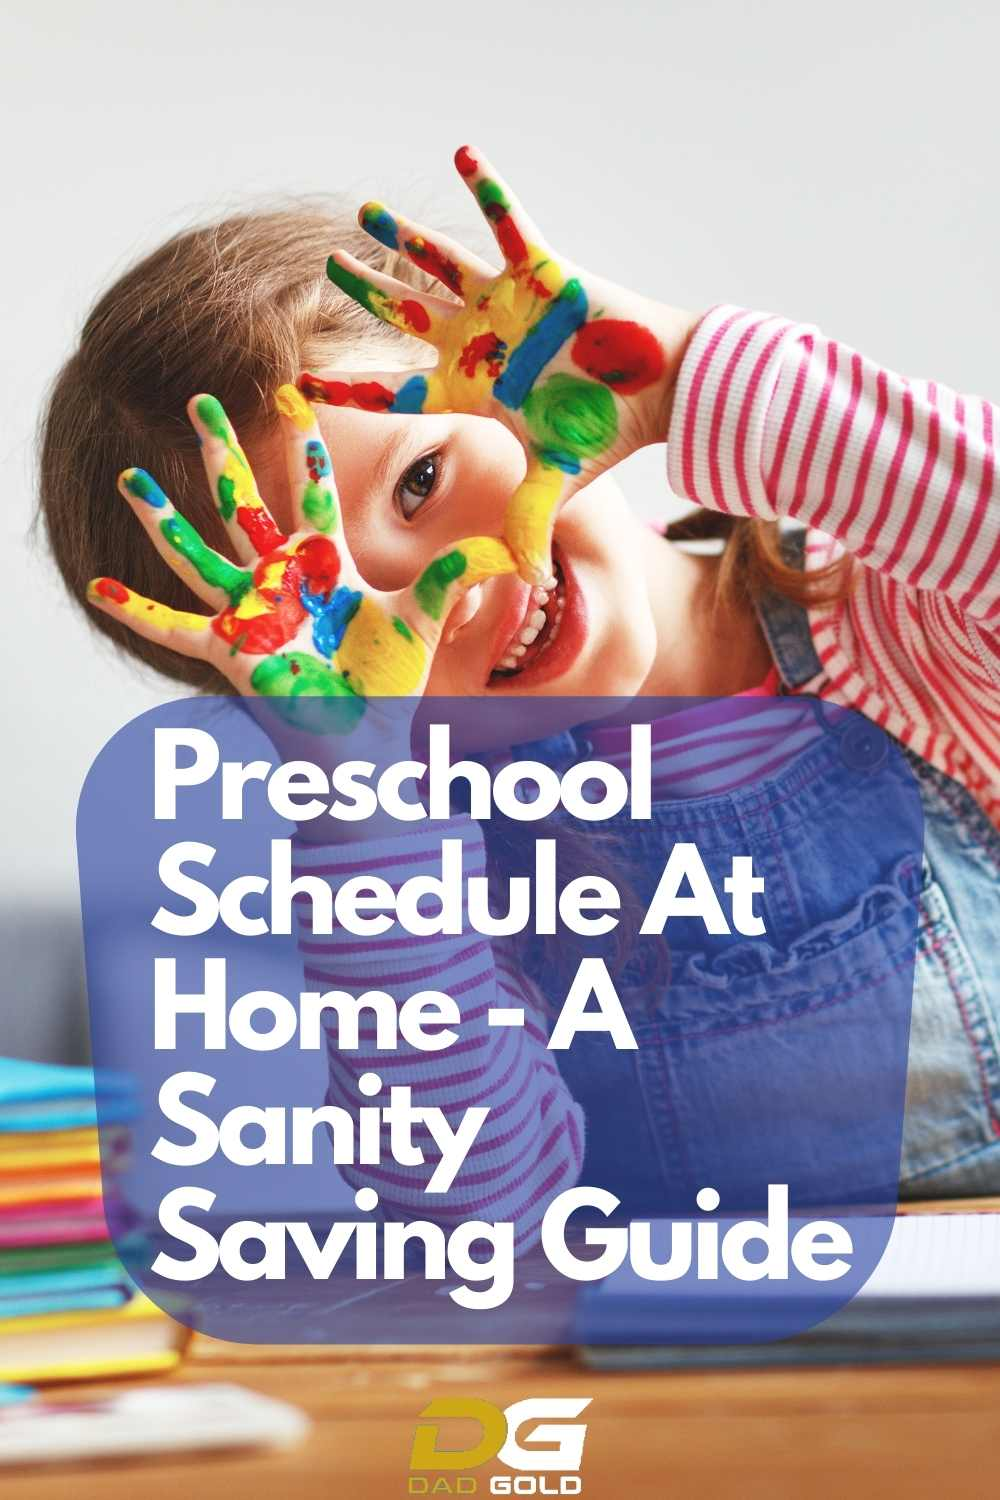 Preschool Schedule At Home - A Sanity Saving Guide